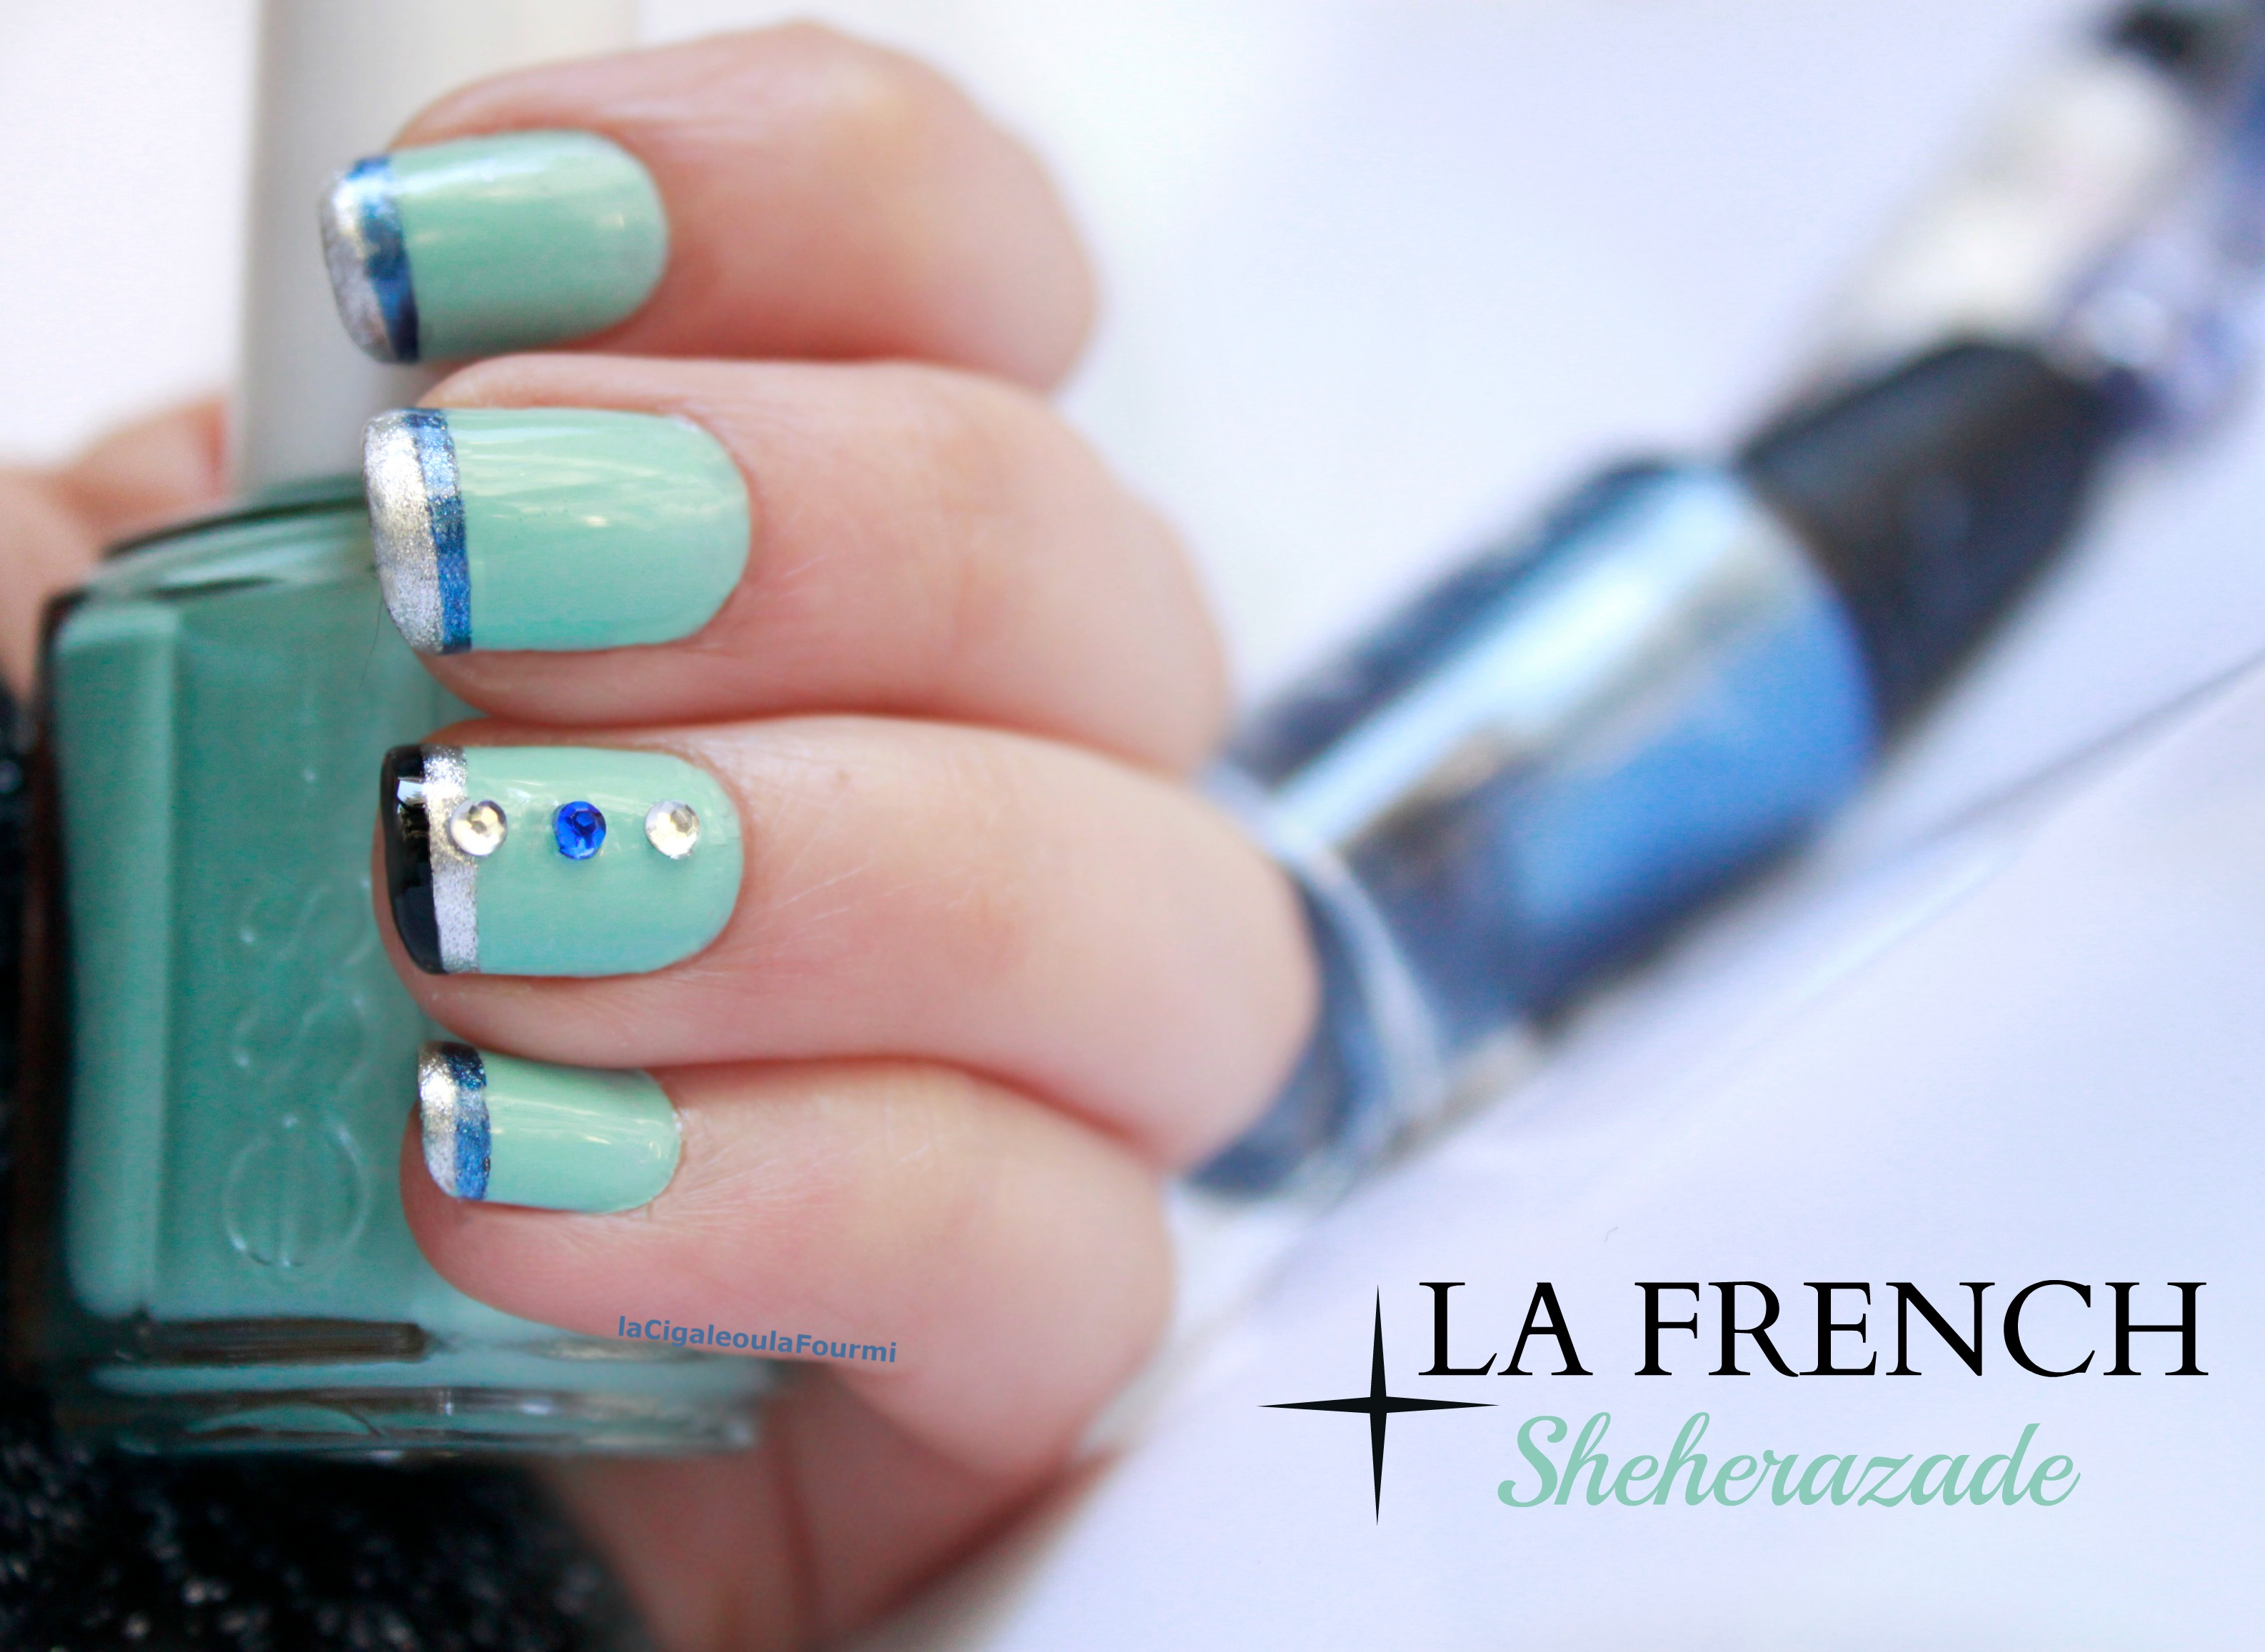 french manucure, idée nail art, ongles, vernis, essie, sheherazade